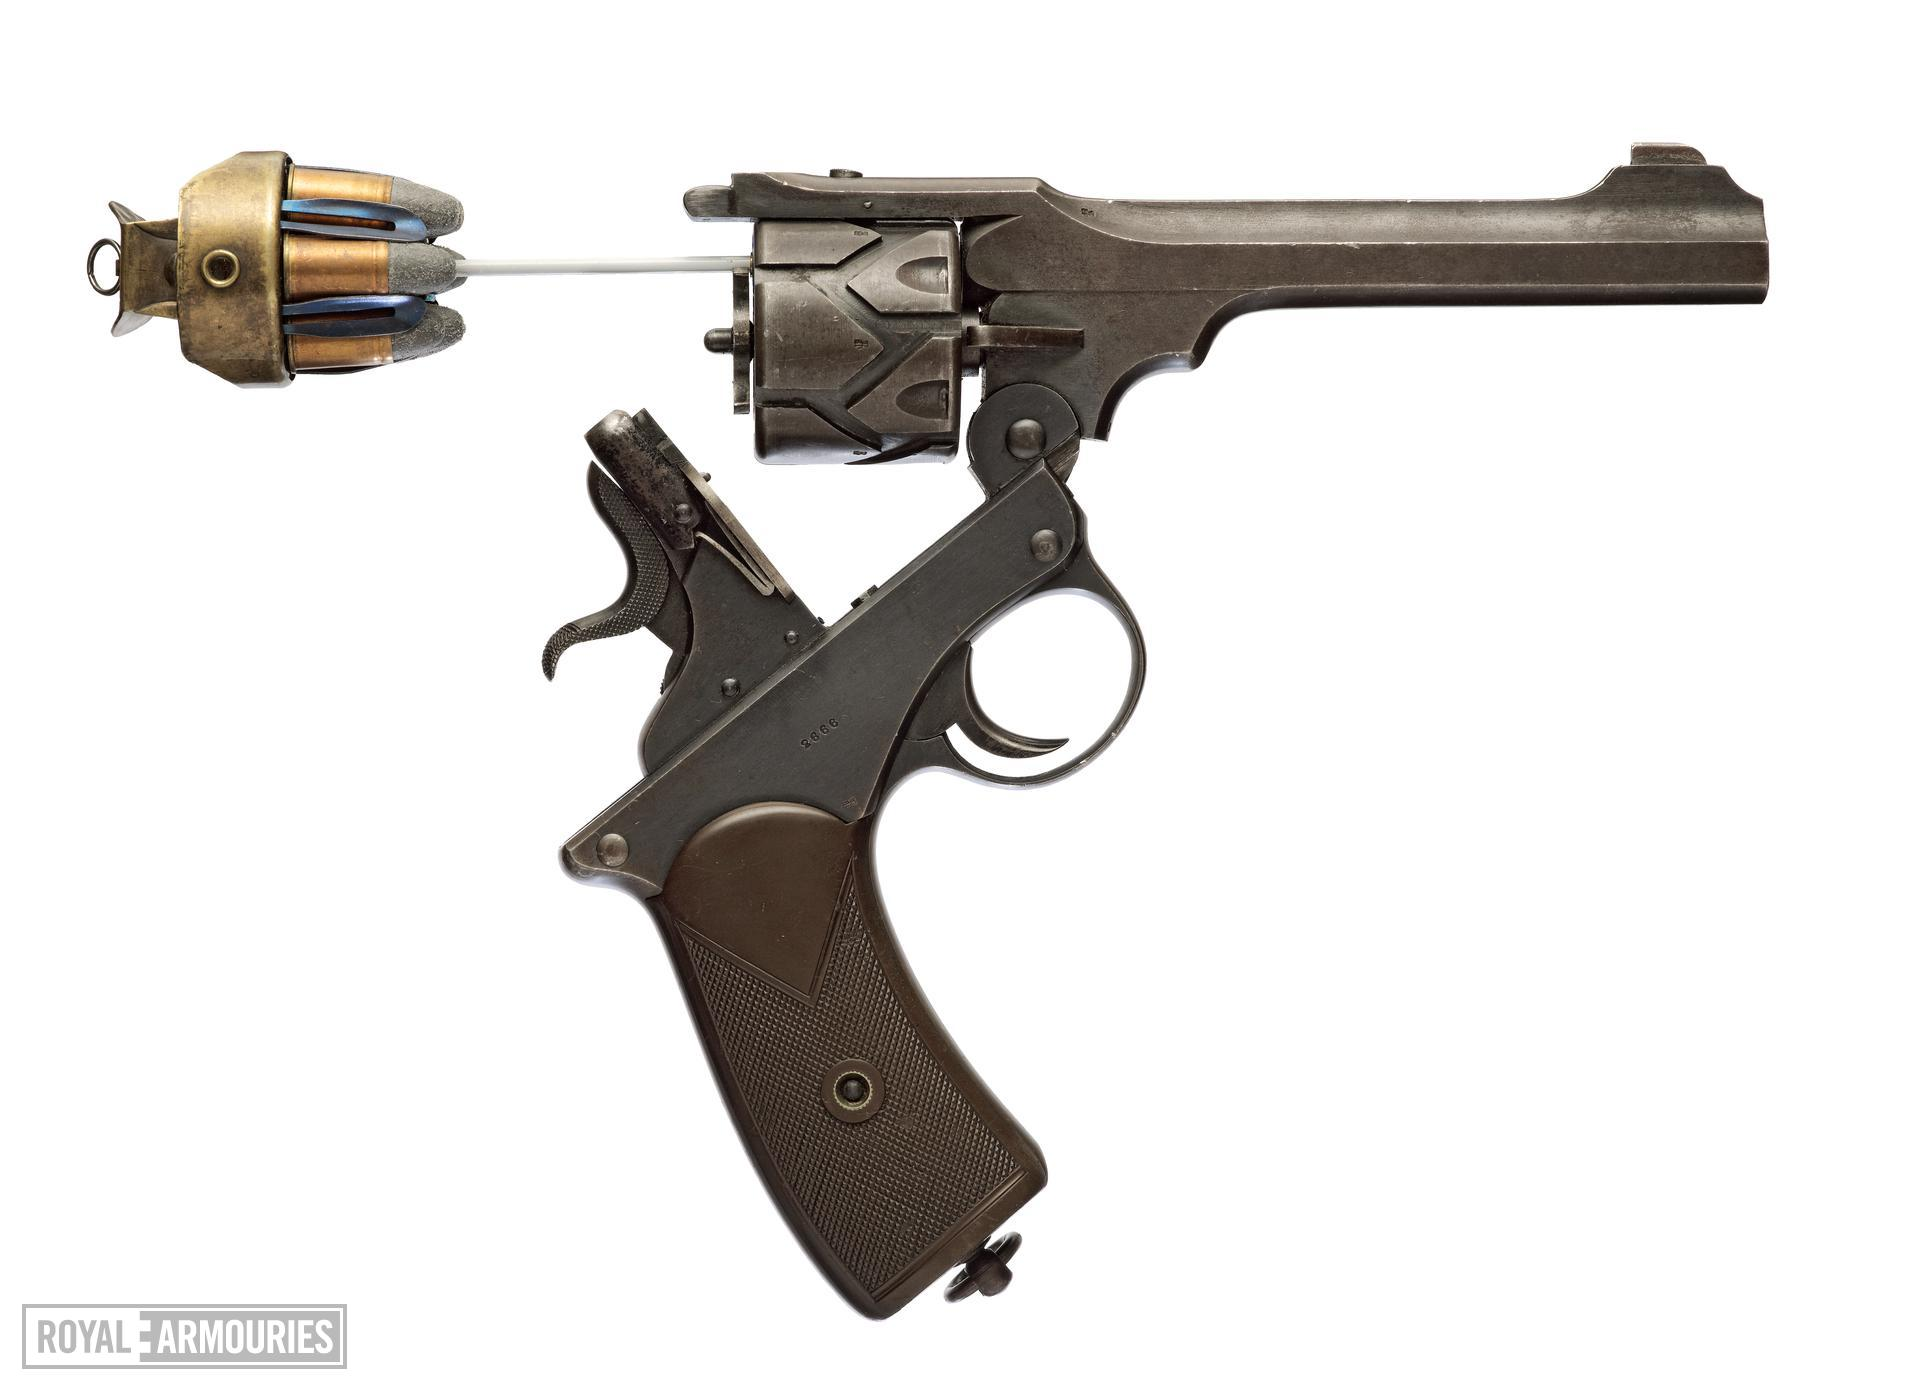 Centrefire six-shot self-cocking revolver - Webley Fosbery Model 1902